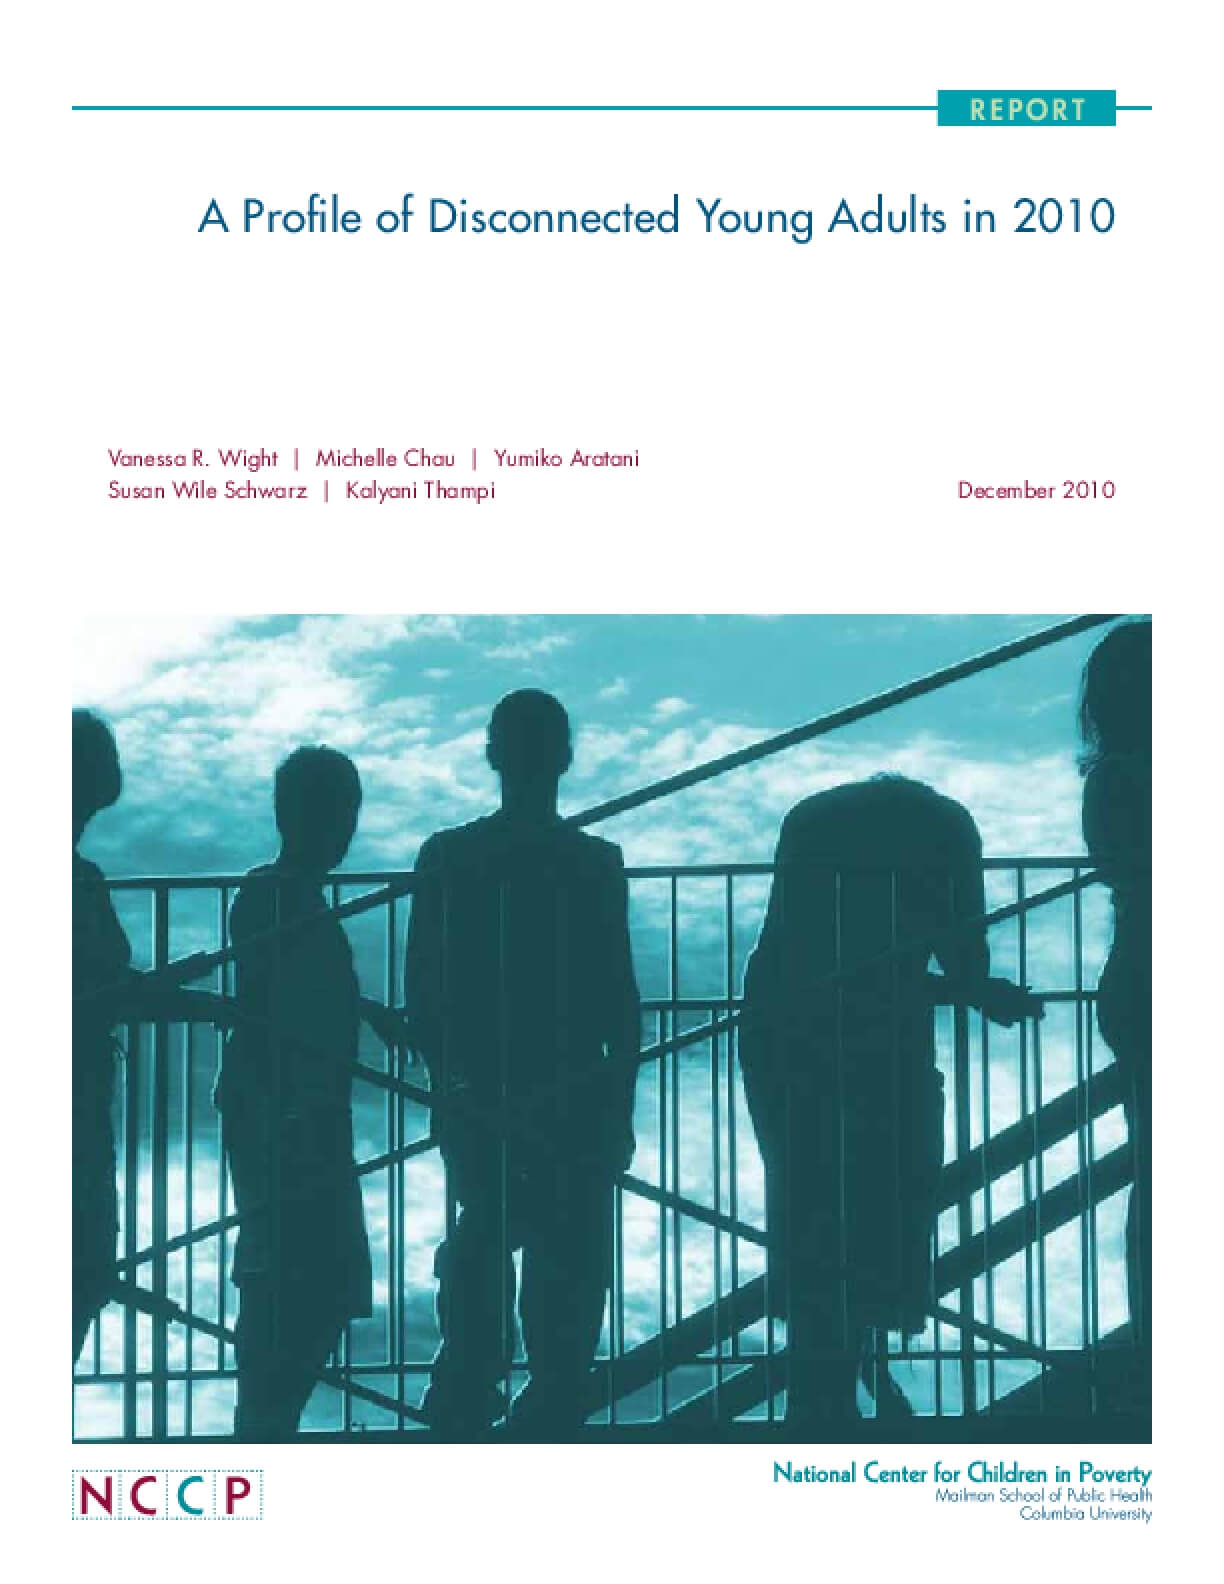 A Profile of Disconnected Young Adults in 2010